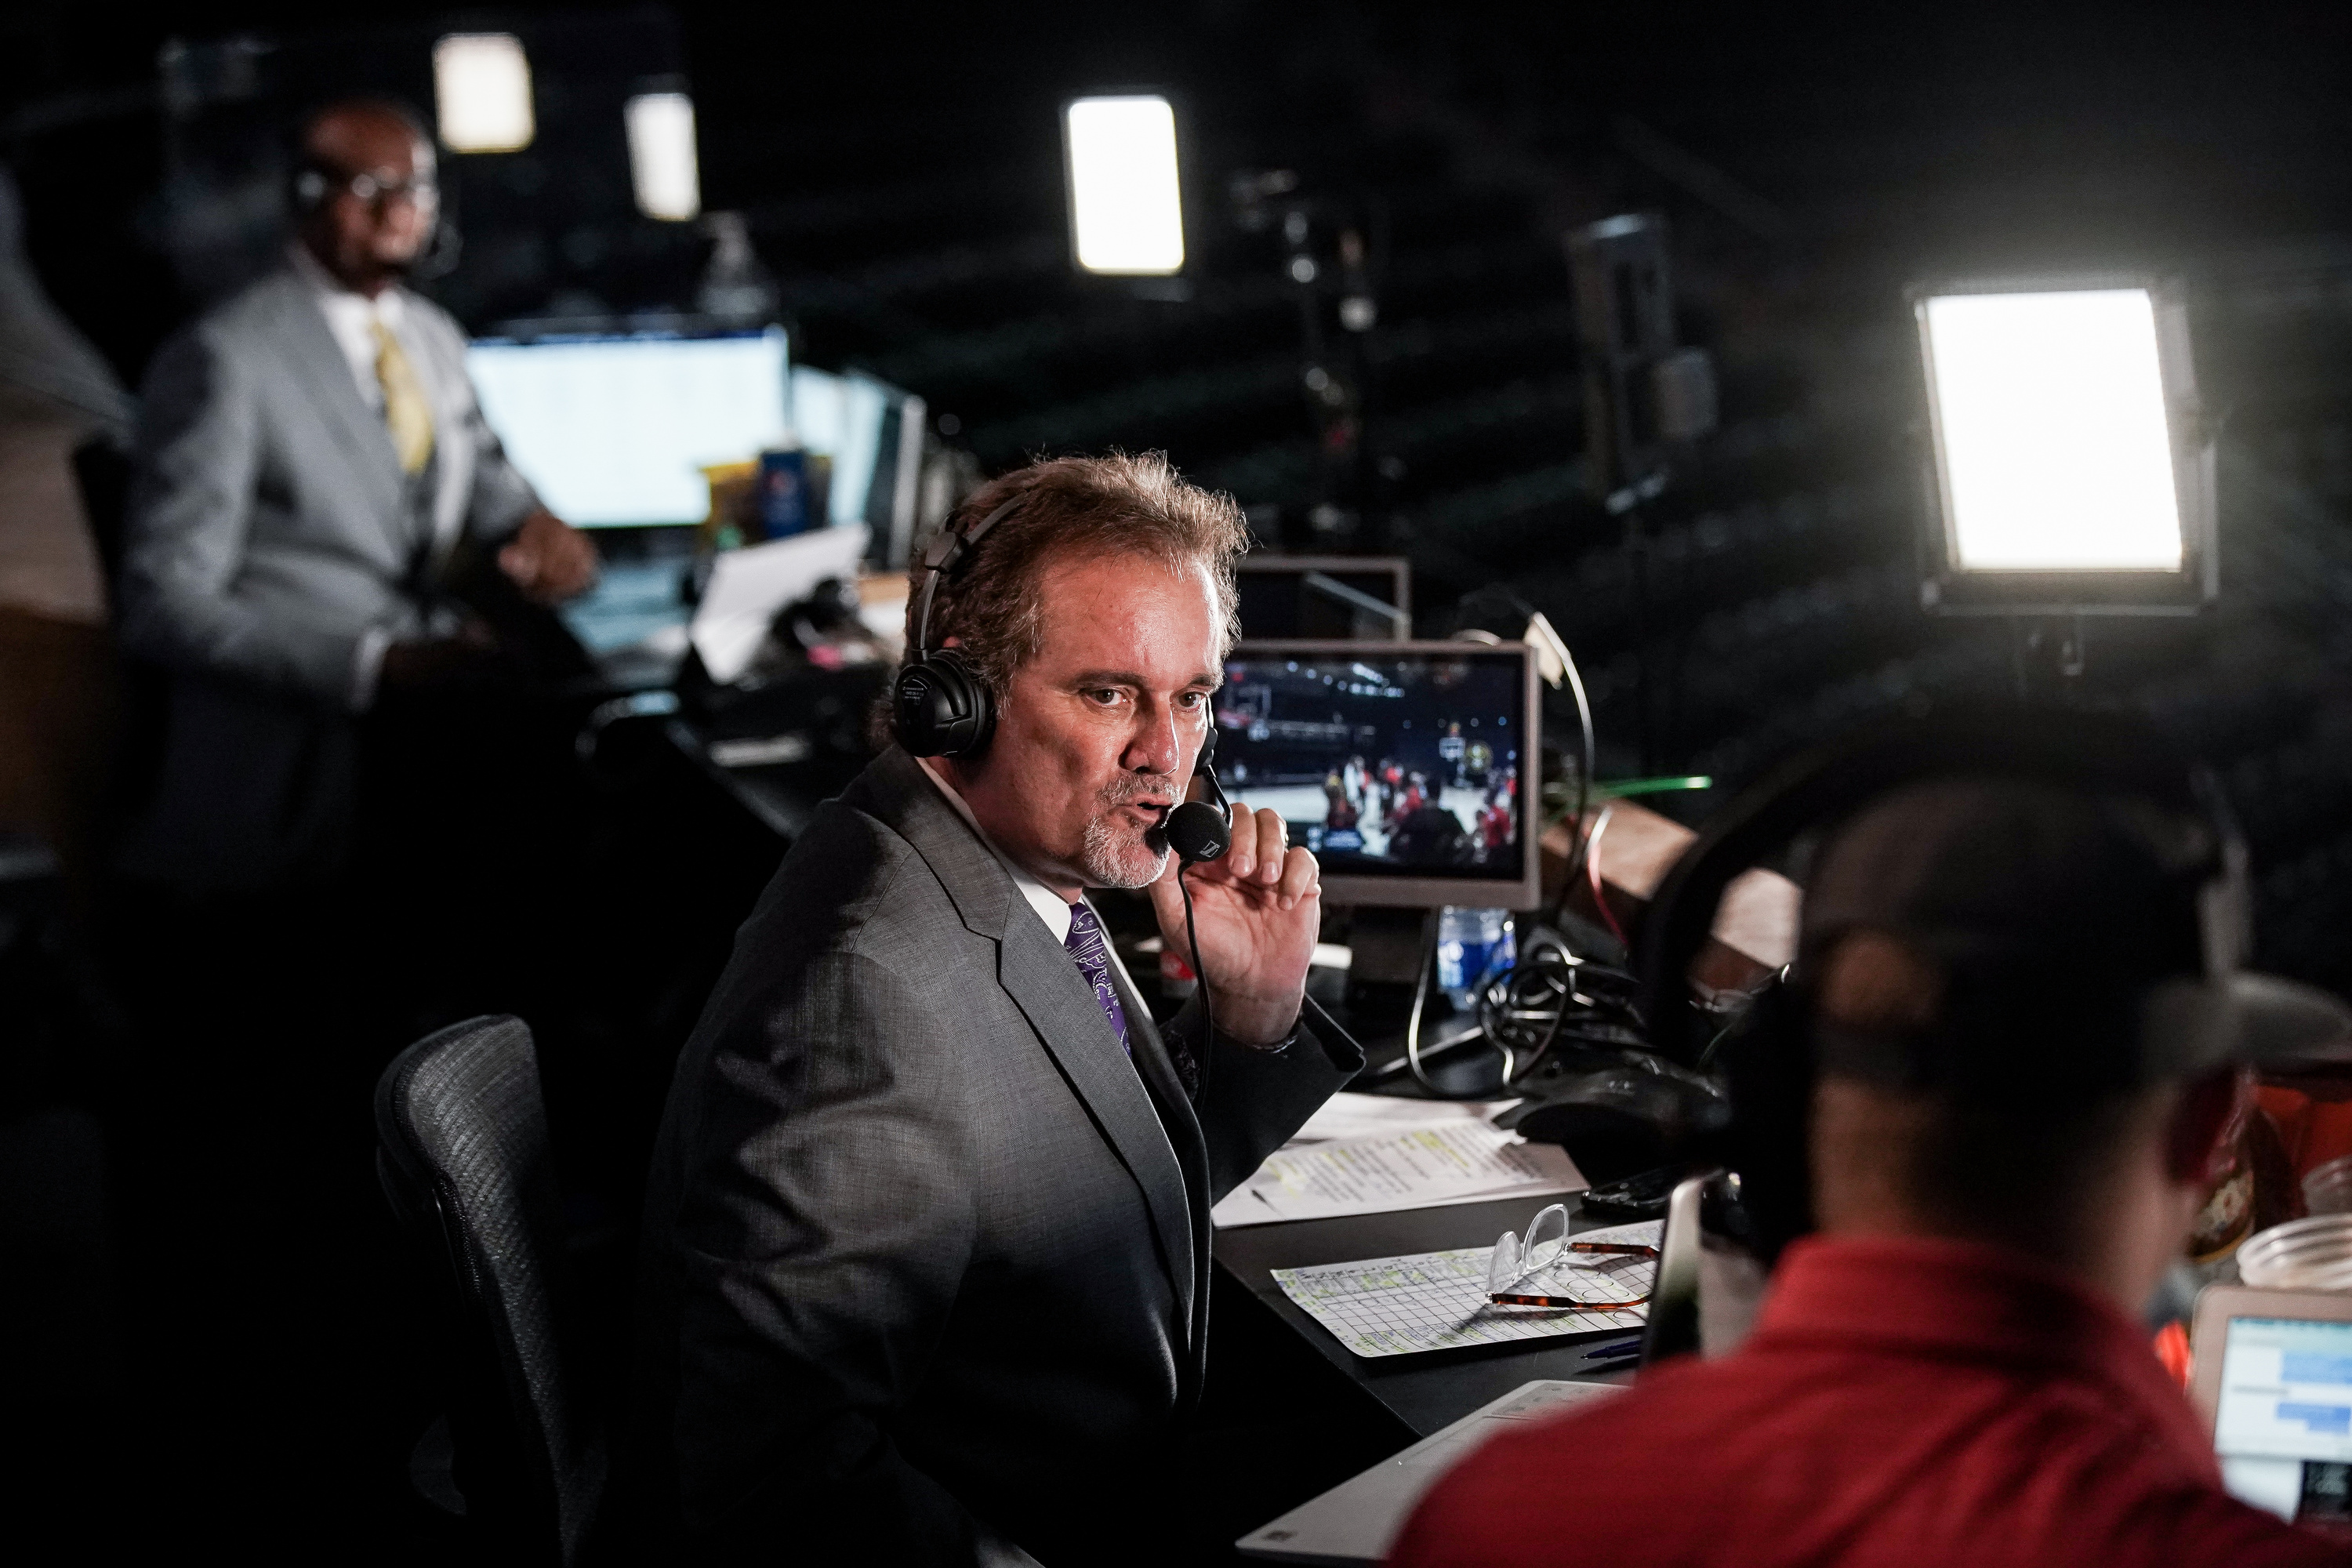 Craig Bolerjack, wearing a suit and tie, calls the play-by-play.